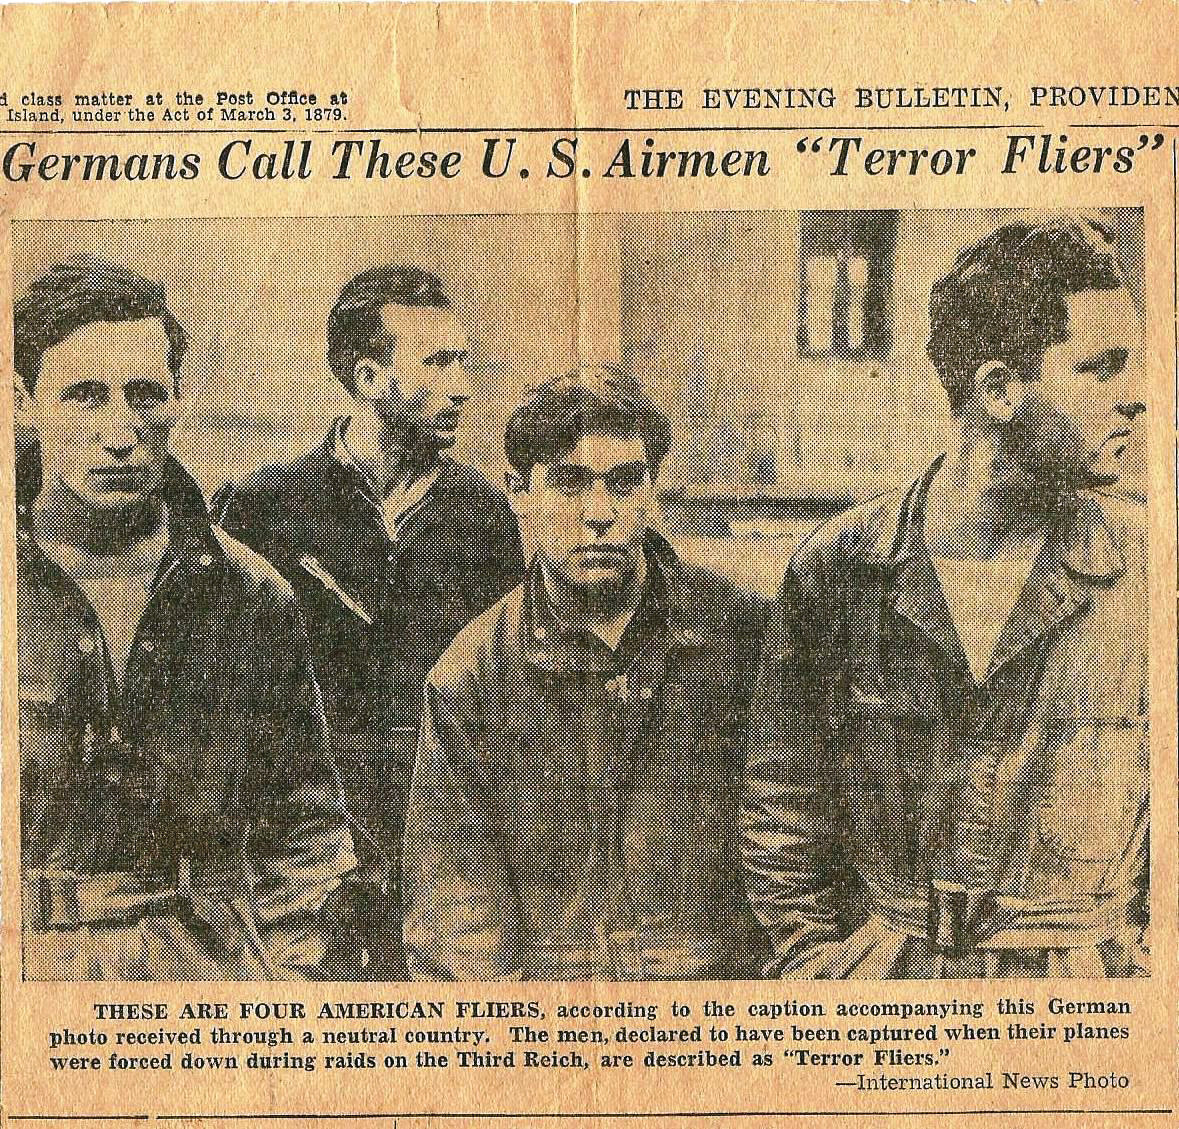 TERROR FLIERS: Staff Sergeant Raymond Barnes (far left), father of Pawtuxet Ranger Commander Ronald Barnes, was captured in 1943 by German Forces after his B-17 was shot down over Germany. This photo, from the Providence Evening Bulletin, was featured without the knowledge that one of the captured pilots was a Rhode Islander.